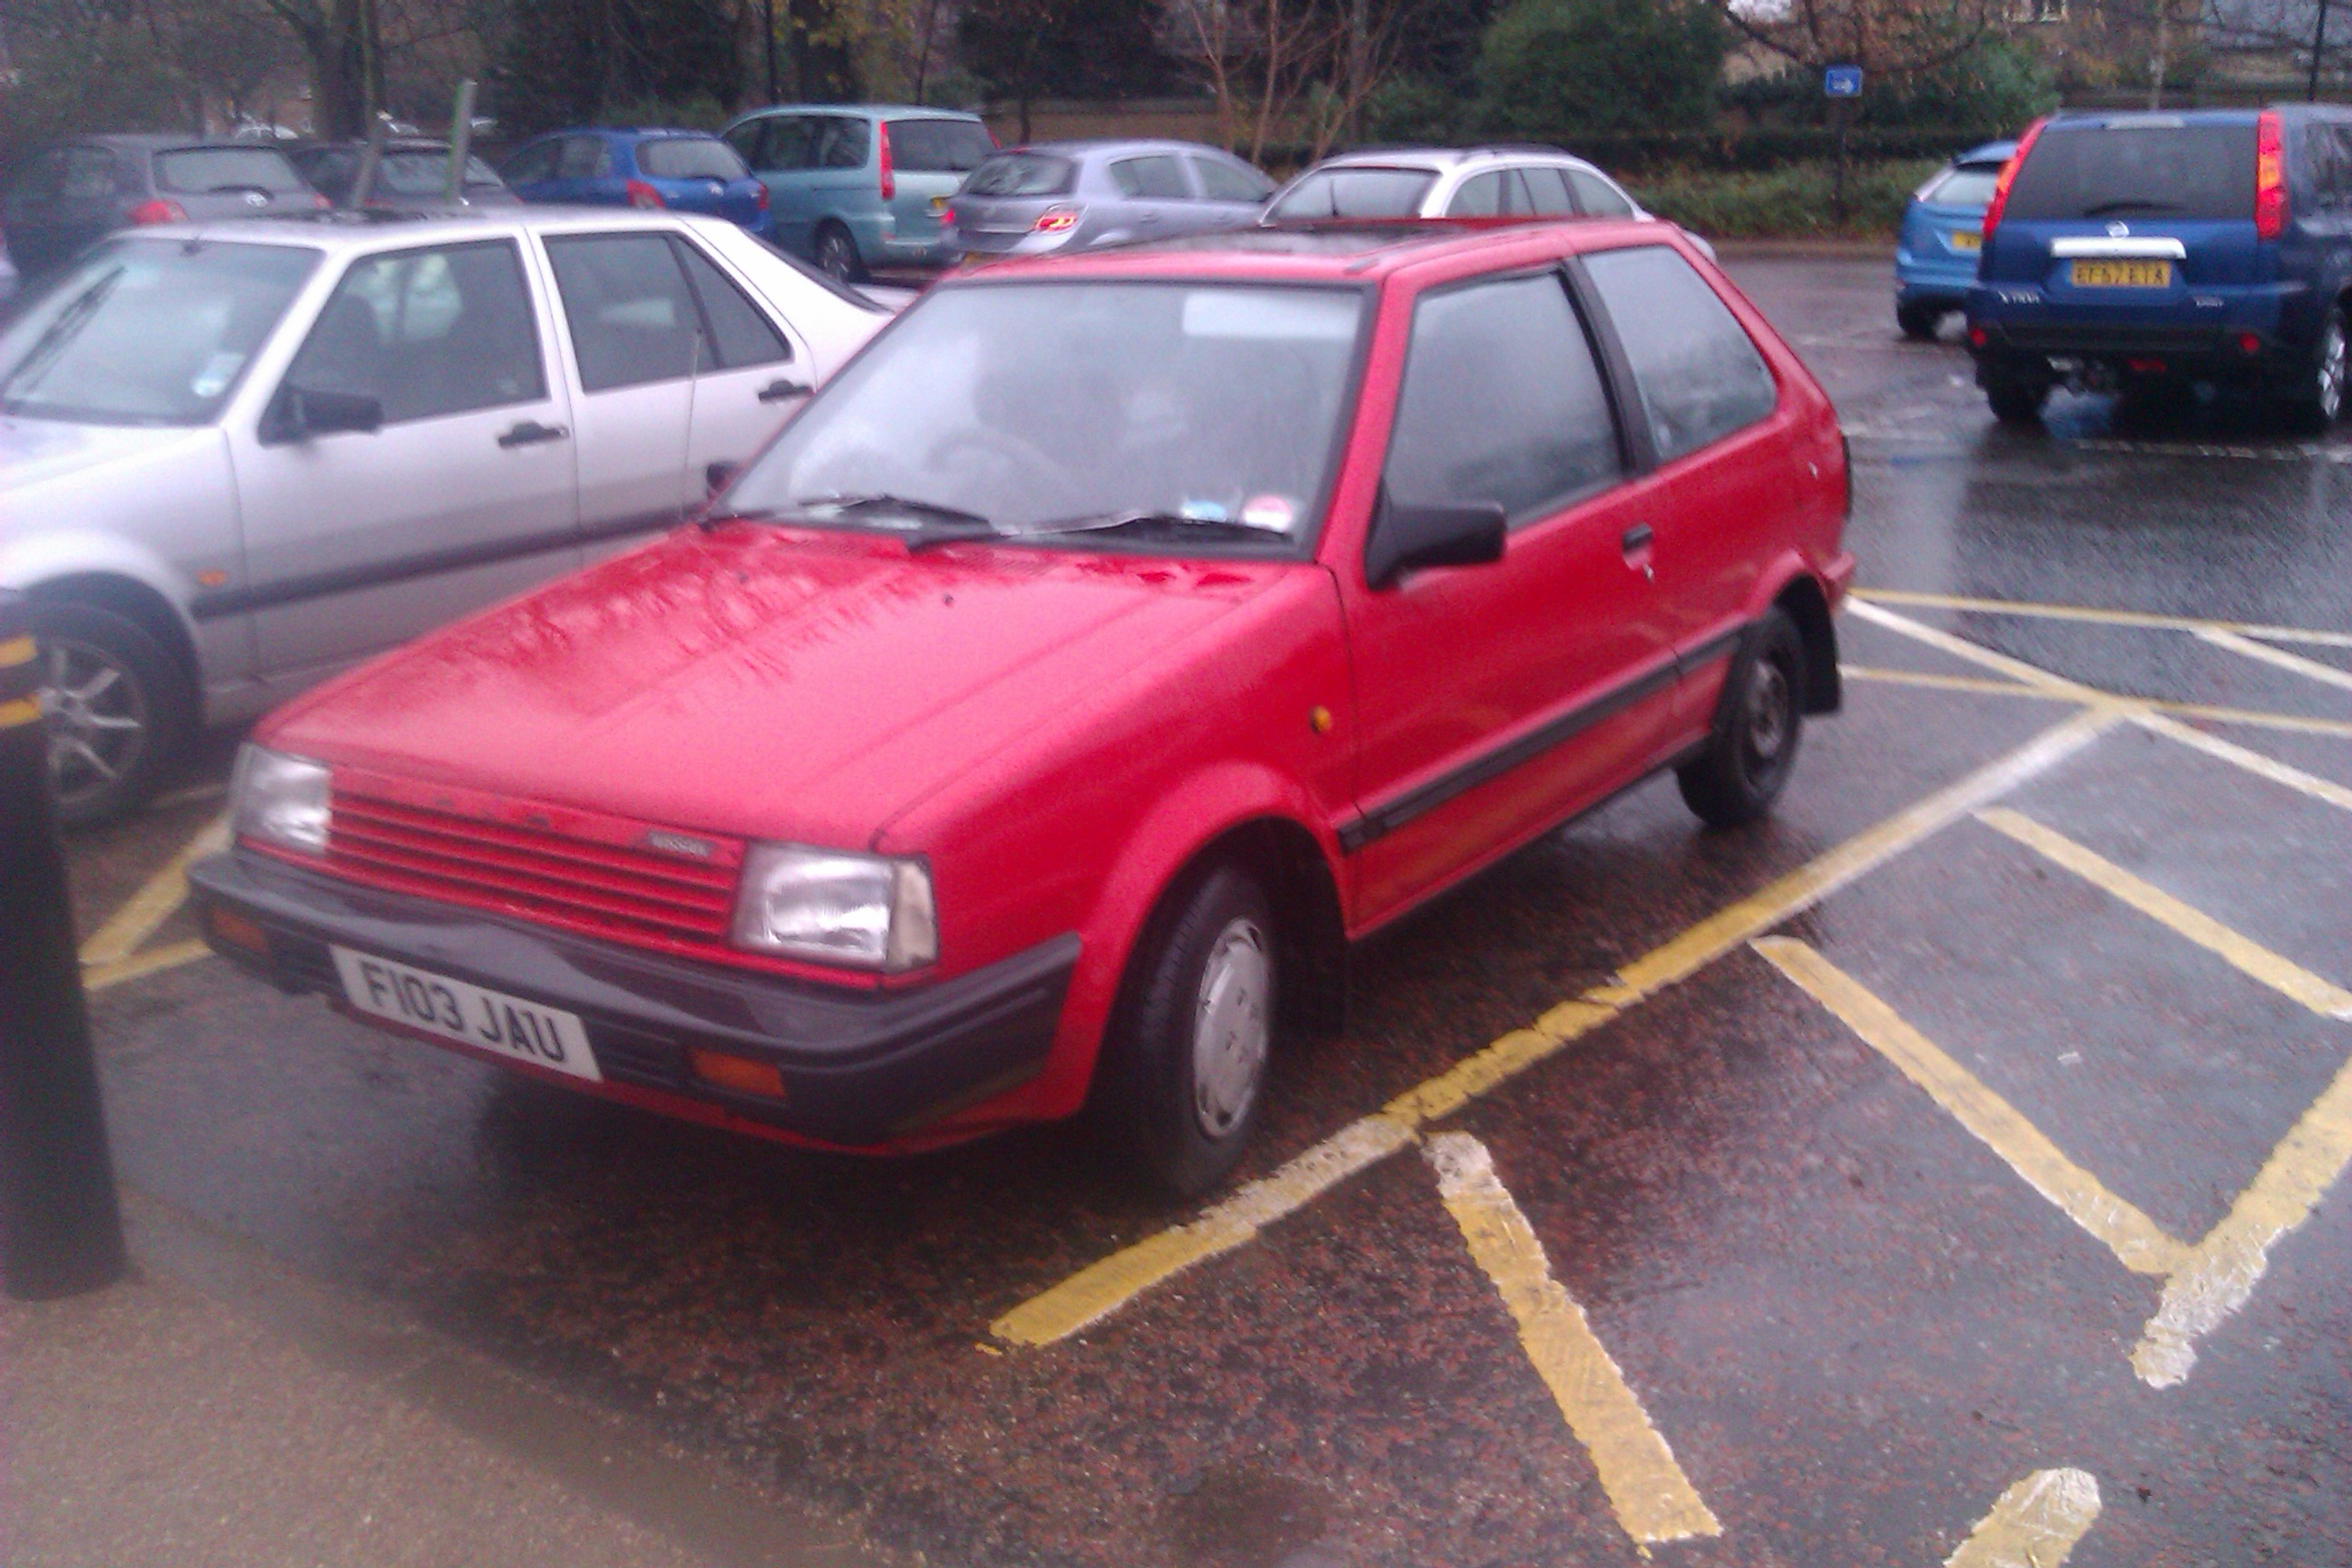 1989 Nissan Micra 1.0 GSX Auto (K10) | Flickr - Photo Sharing!